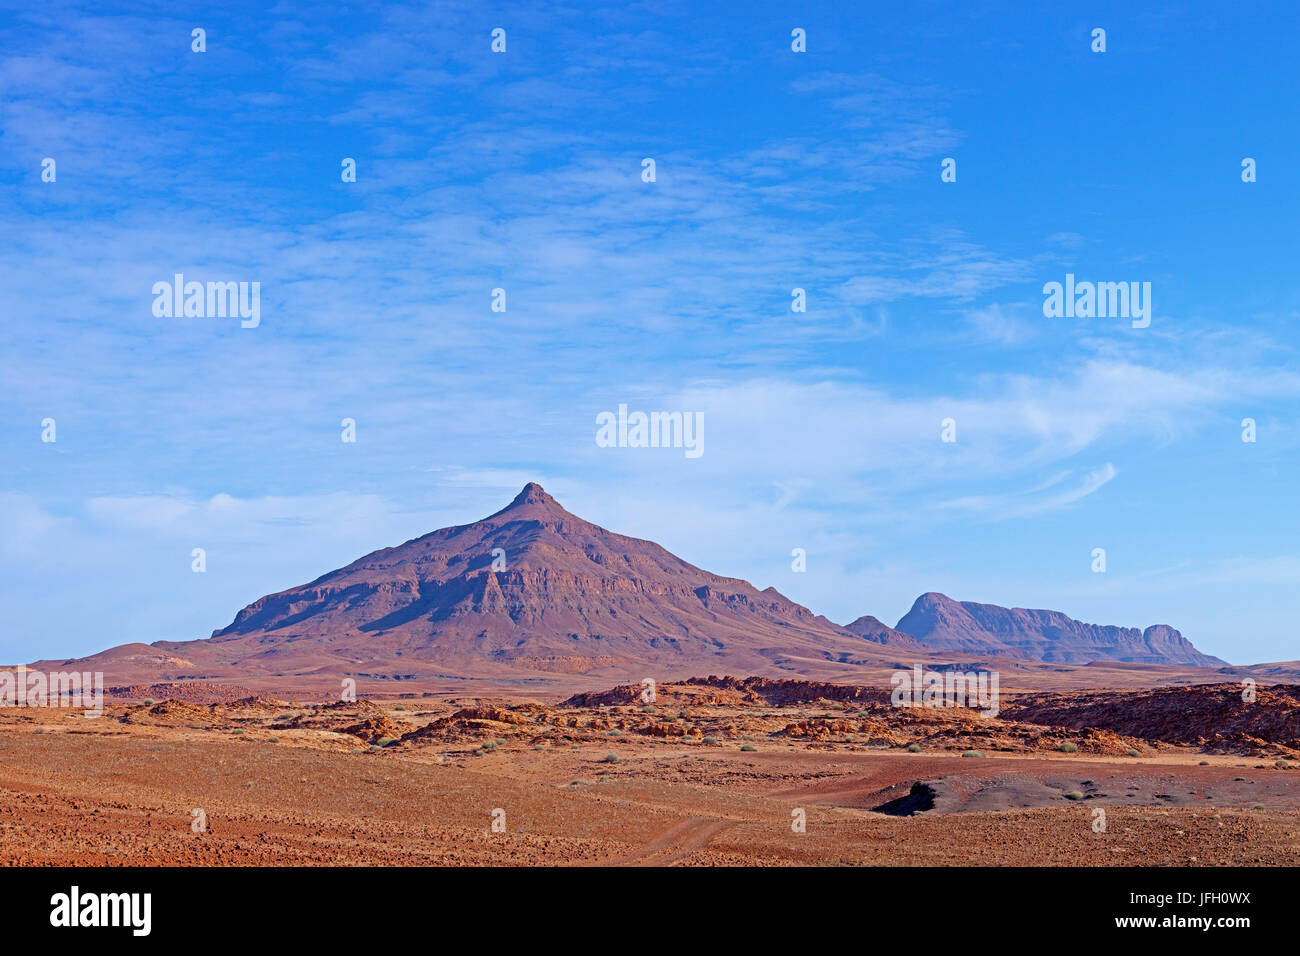 Mountain landscape with pointed rock cone, sandstone abnormal termination, erosion, Damaraland, Namibia - Stock Image